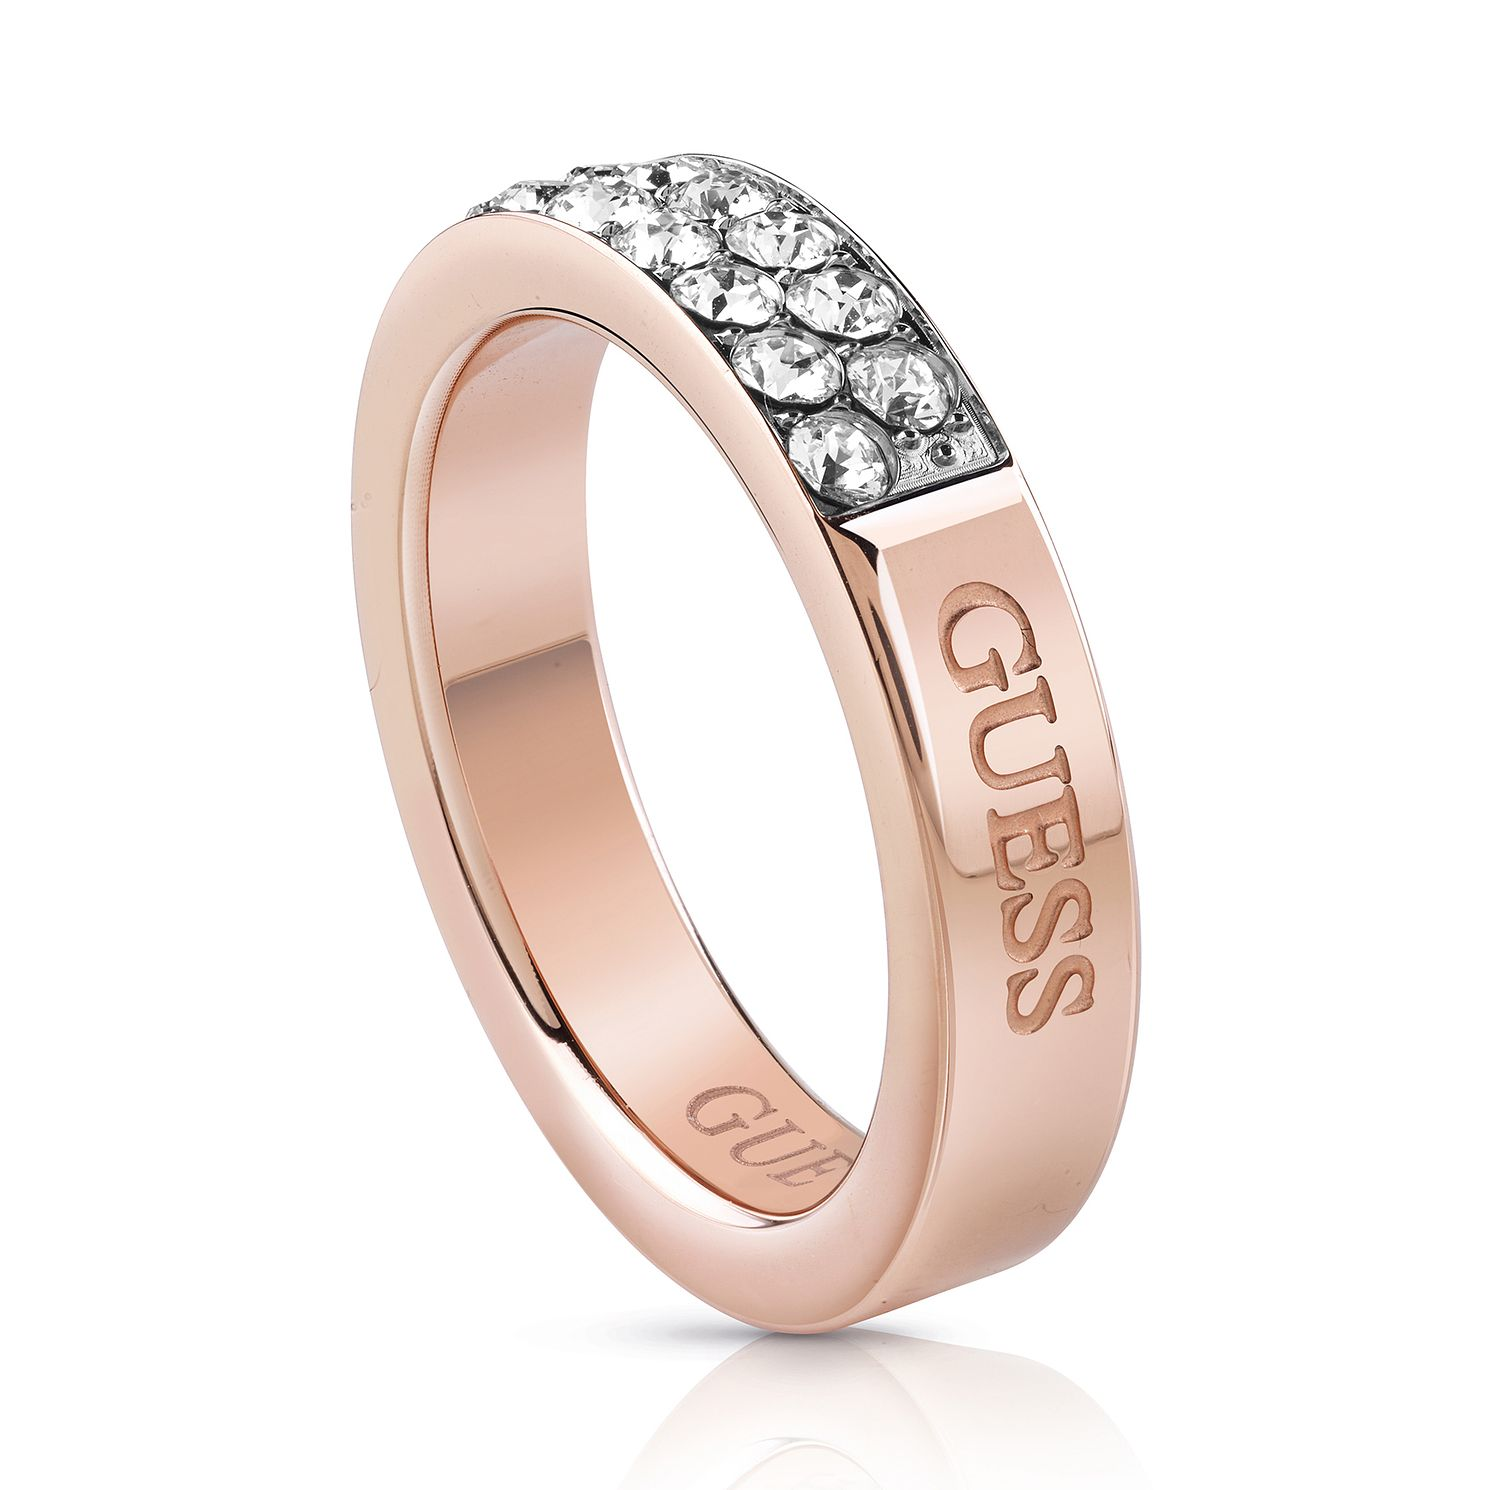 Guess Rose Gold Tone Swarovski Crystal Ring - Product number 5922976